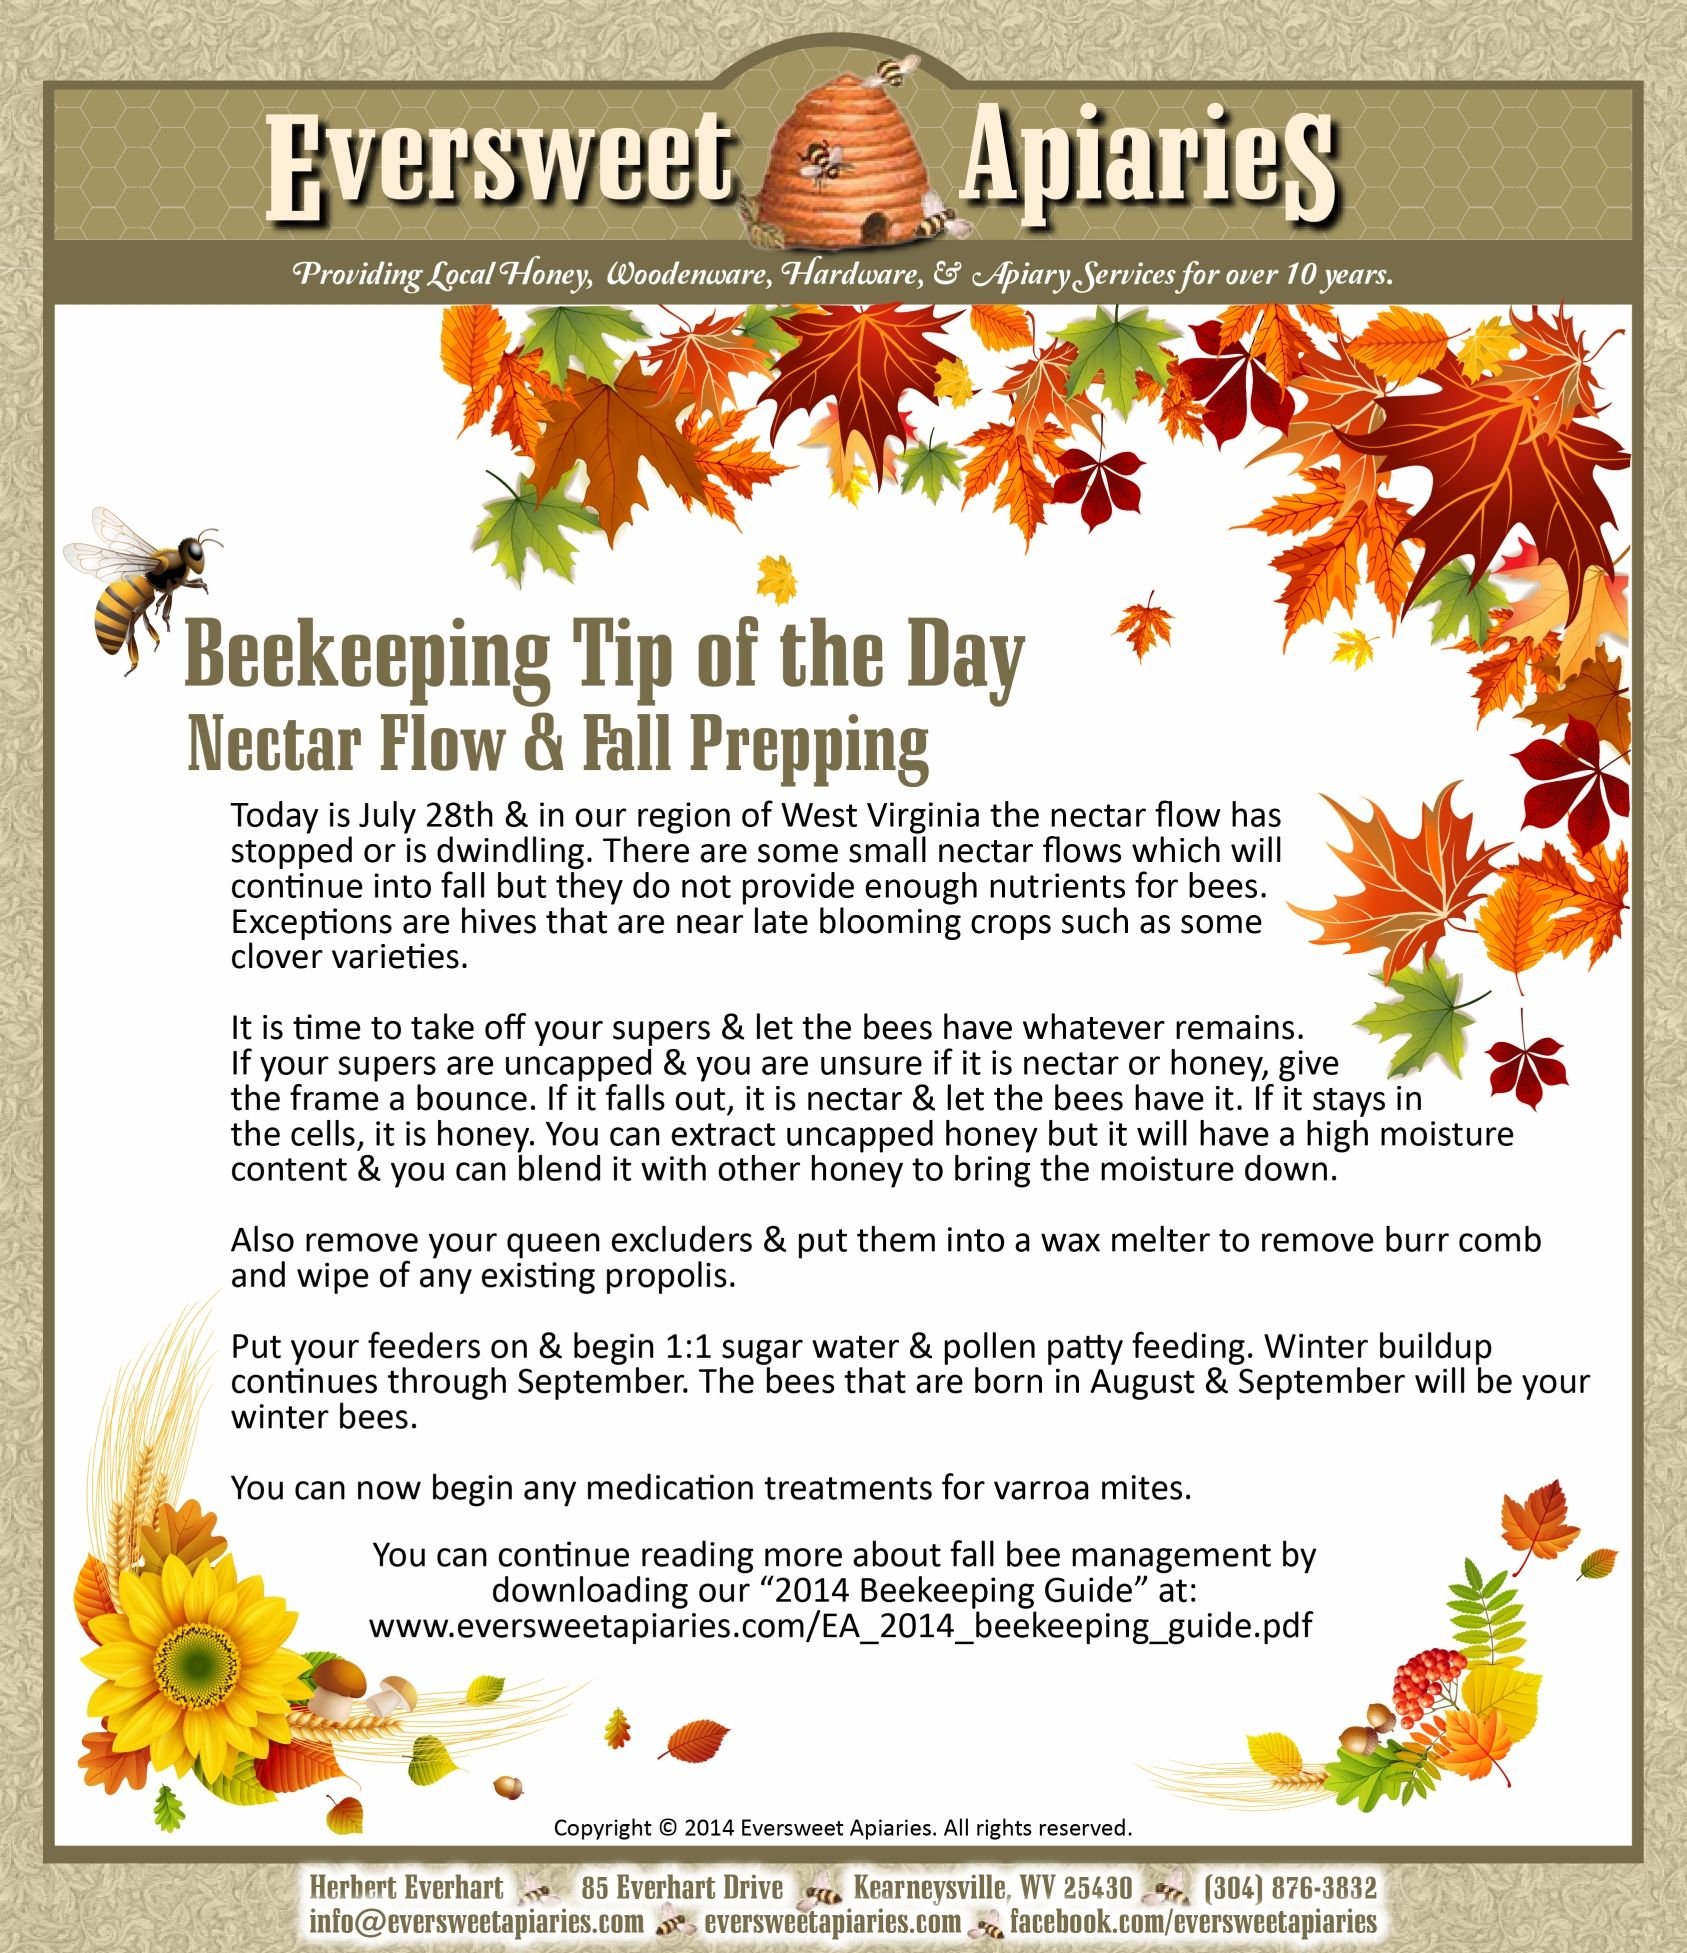 Beekeeping Tip of the Day - Nectar Flow & Fall Prepping